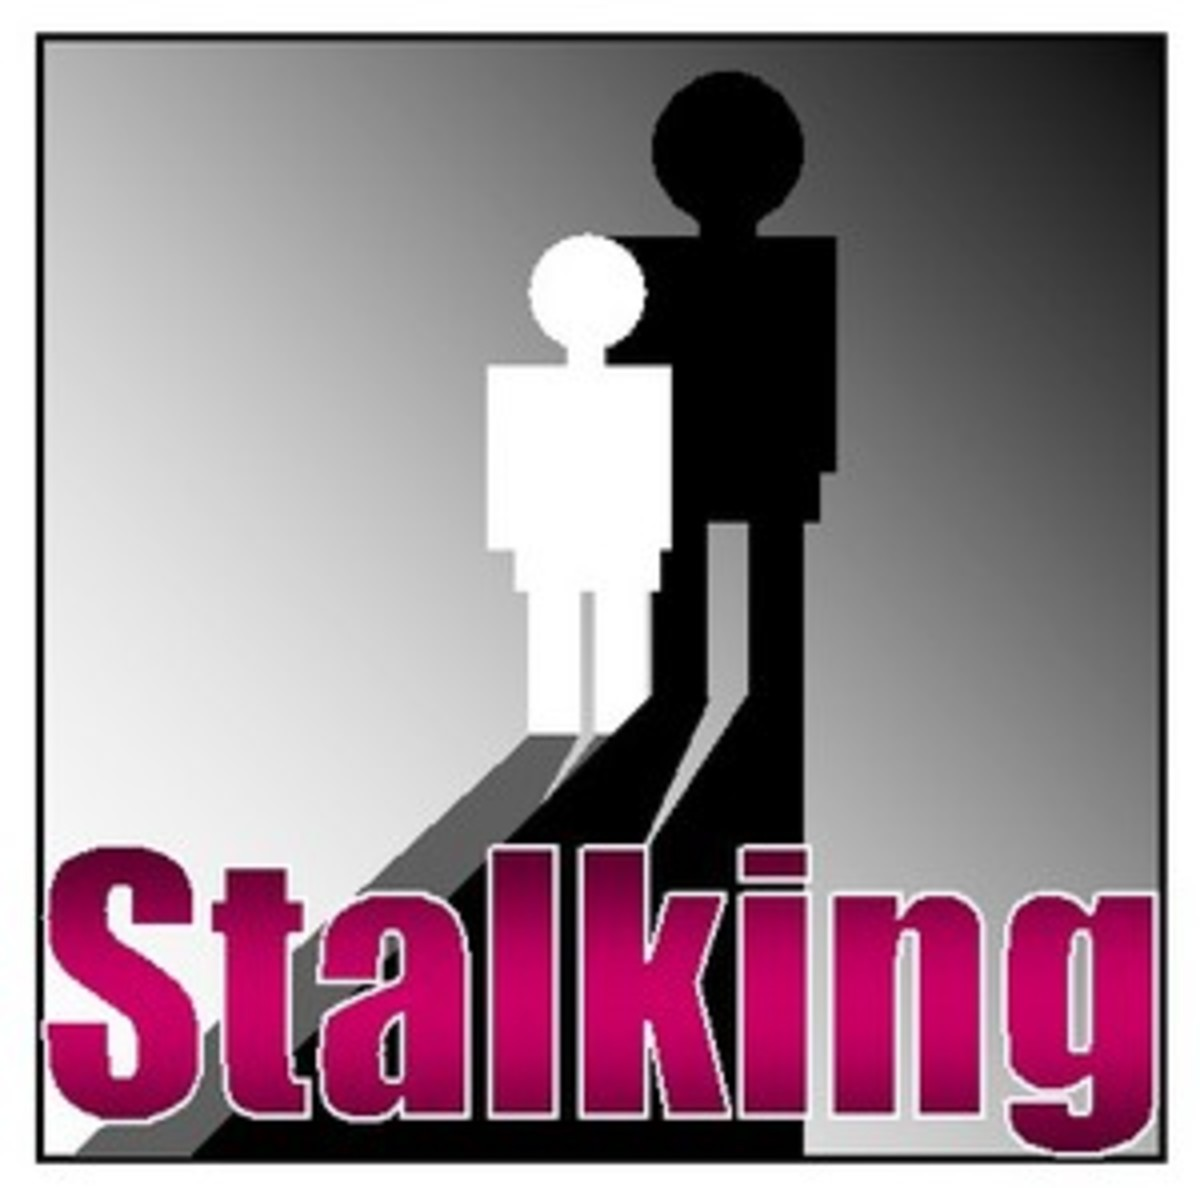 being-stalked-is-scary-and-many-people-will-not-believe-it-is-true